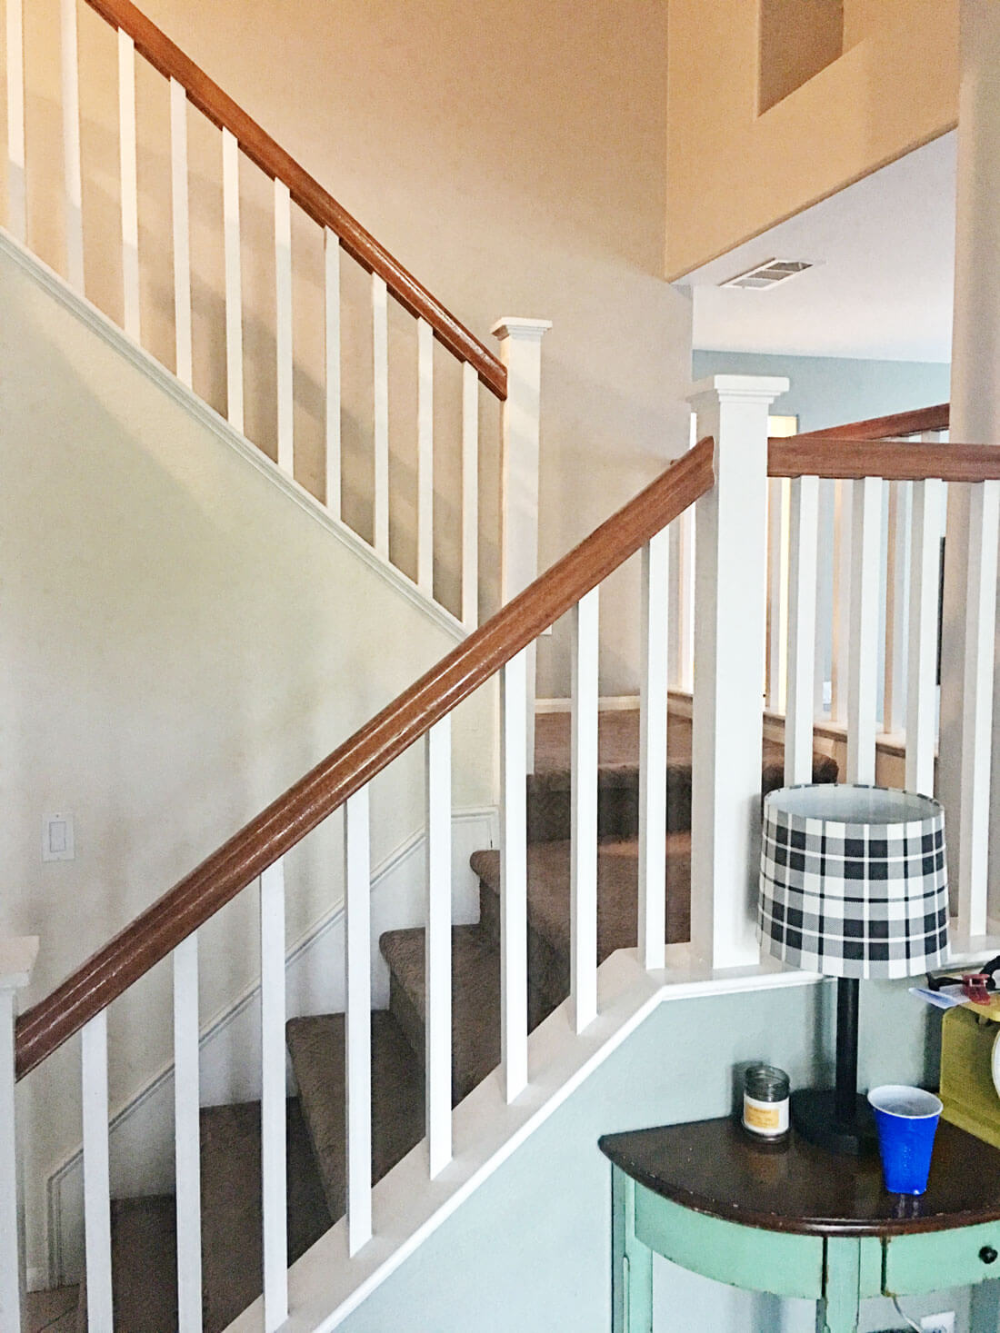 How to Paint Your Stair Railings and Banister Painted